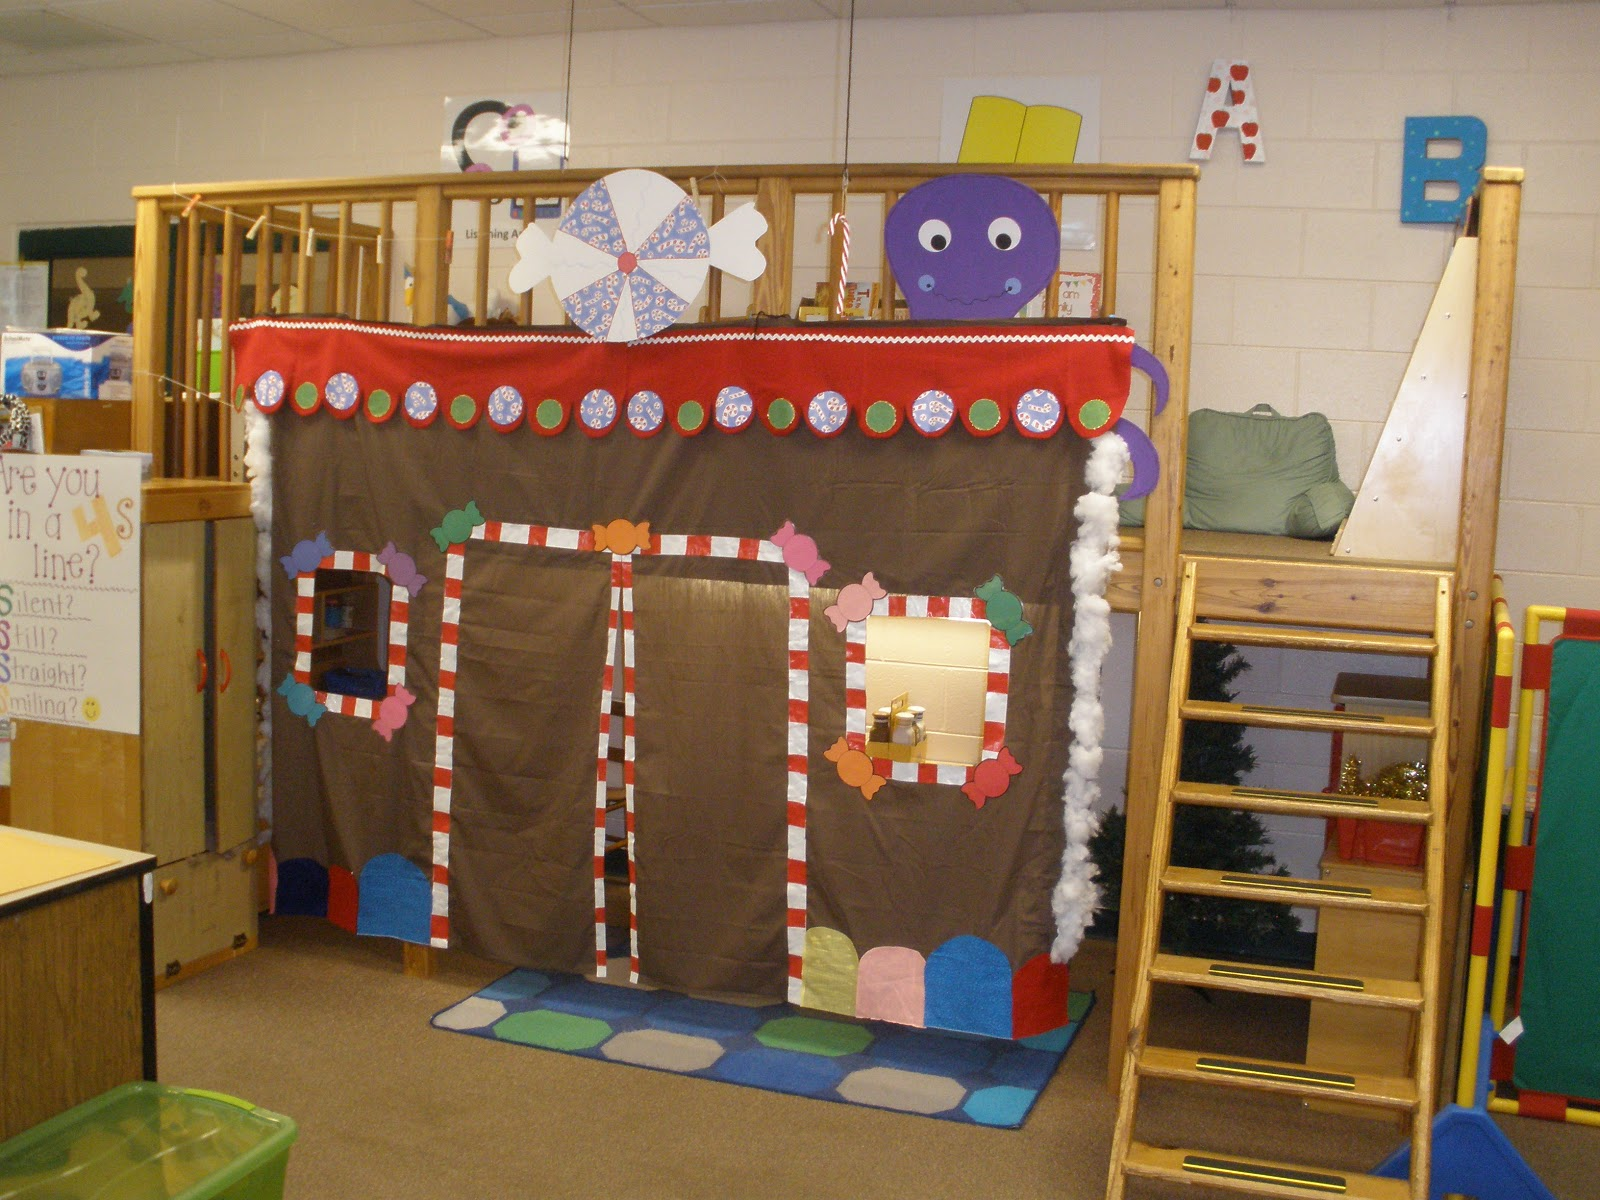 Displaying 19 gt images for gingerbread house door decorations